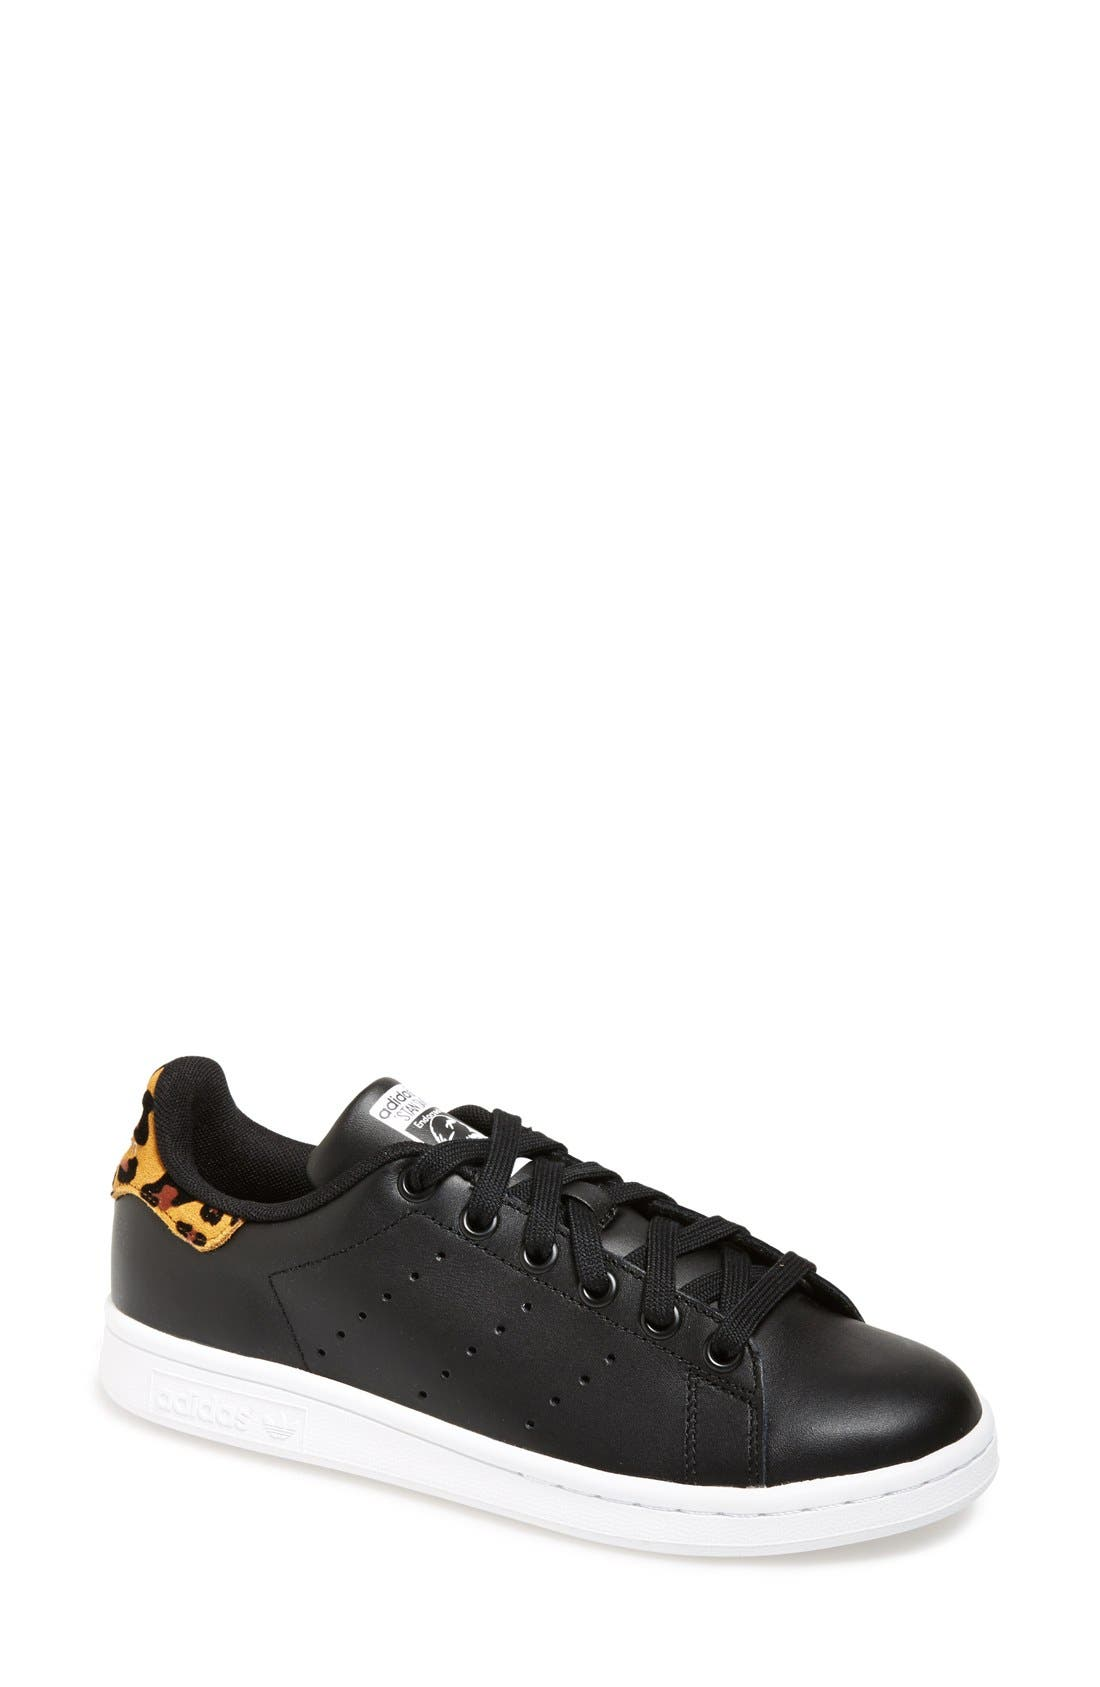 'Stan Smith' Sneaker,                         Main,                         color, 001